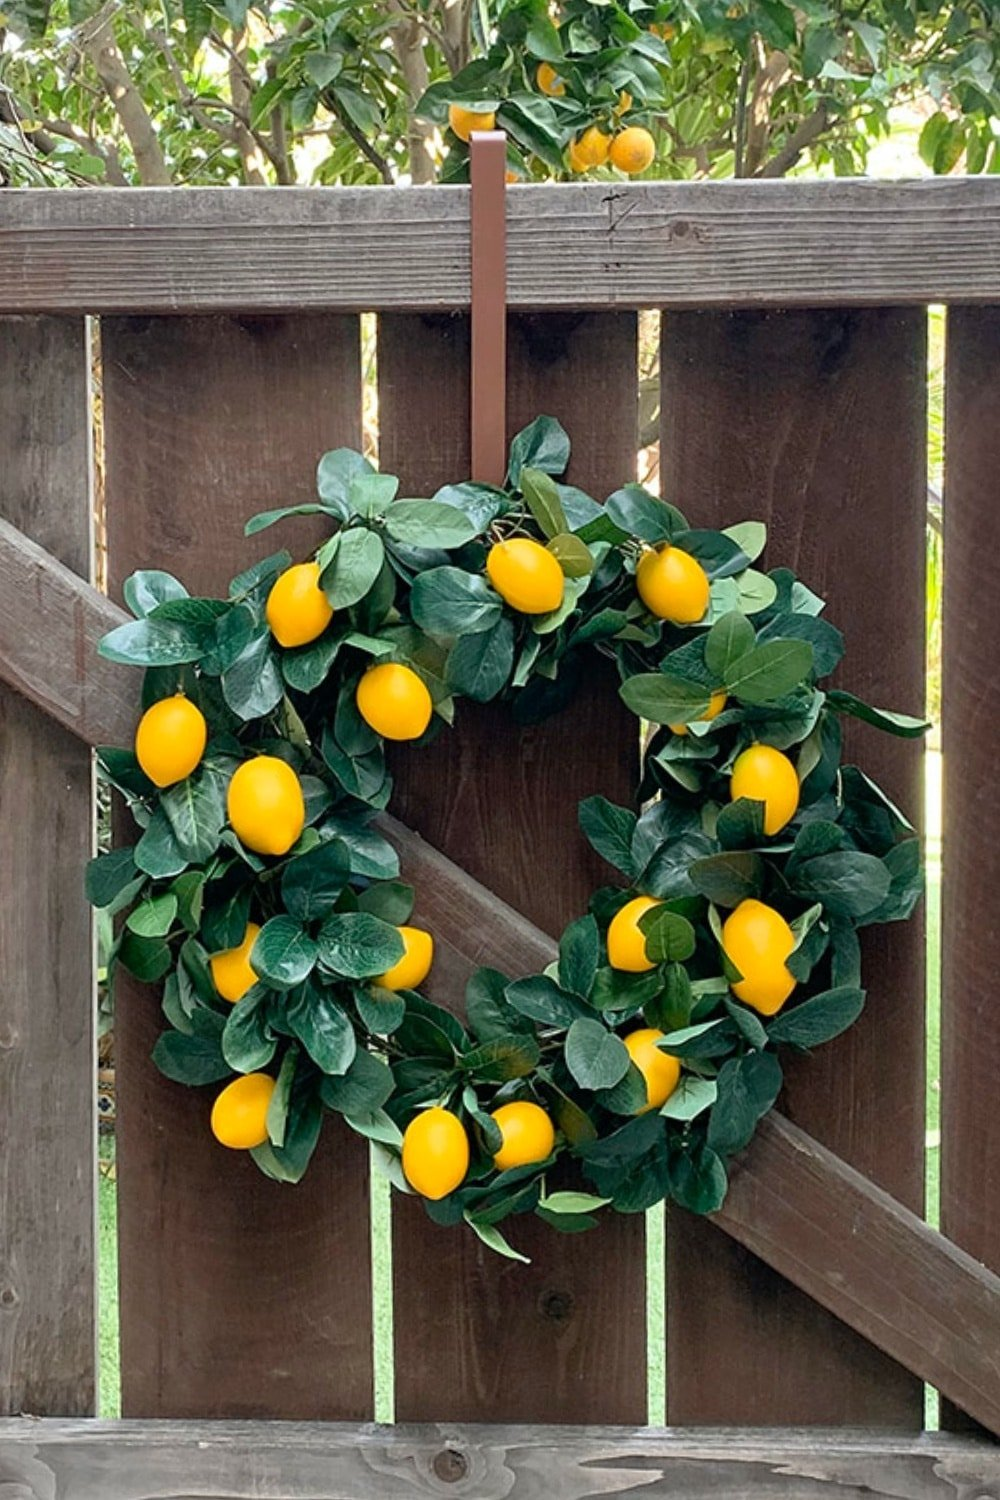 DIY Lemon Wreath from a Garland 42